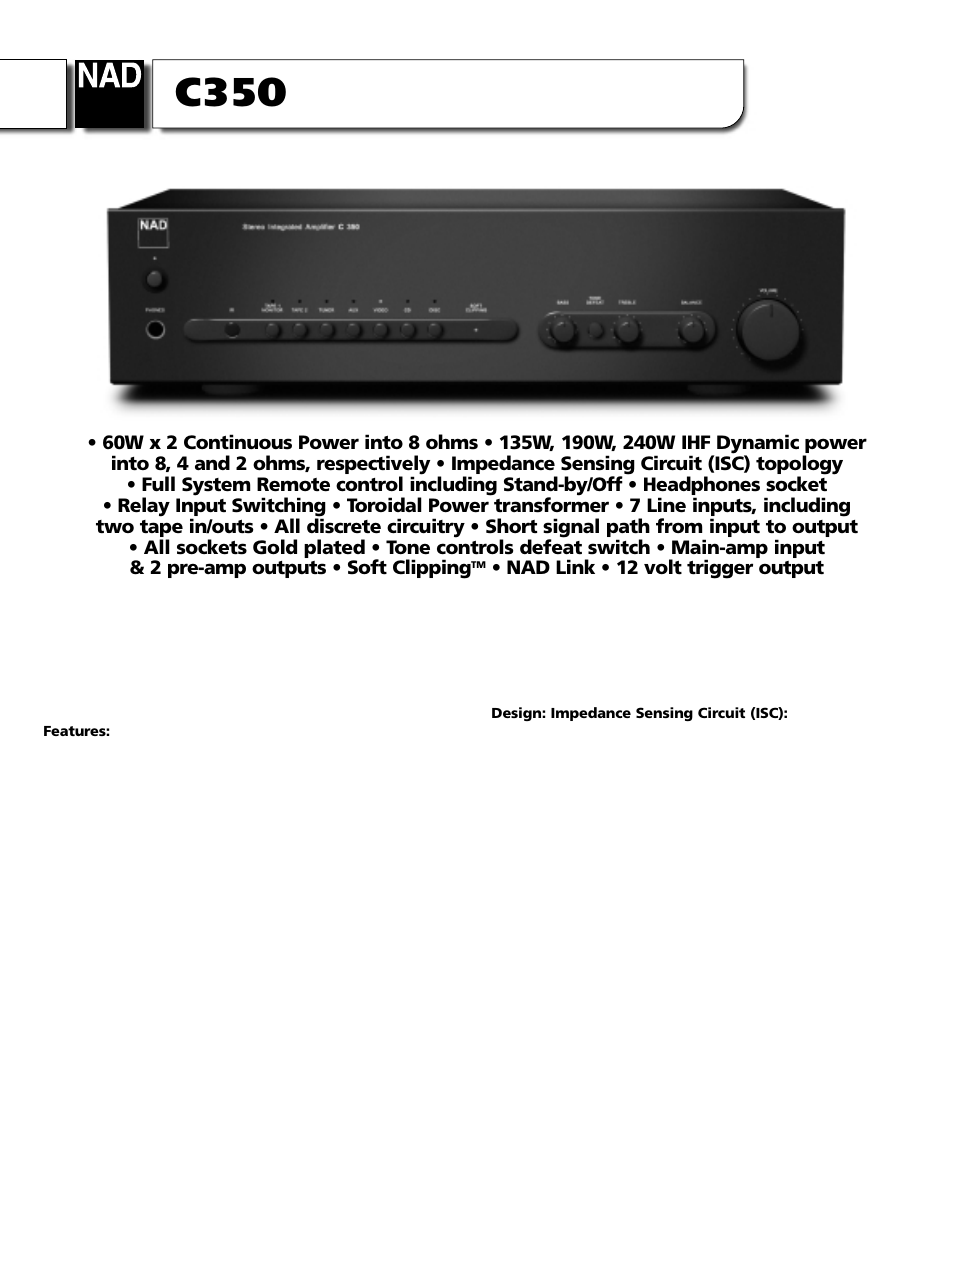 Nad C350 User Manual 2 Pages Inserting A Tone Control Between Preamp And Power Amp